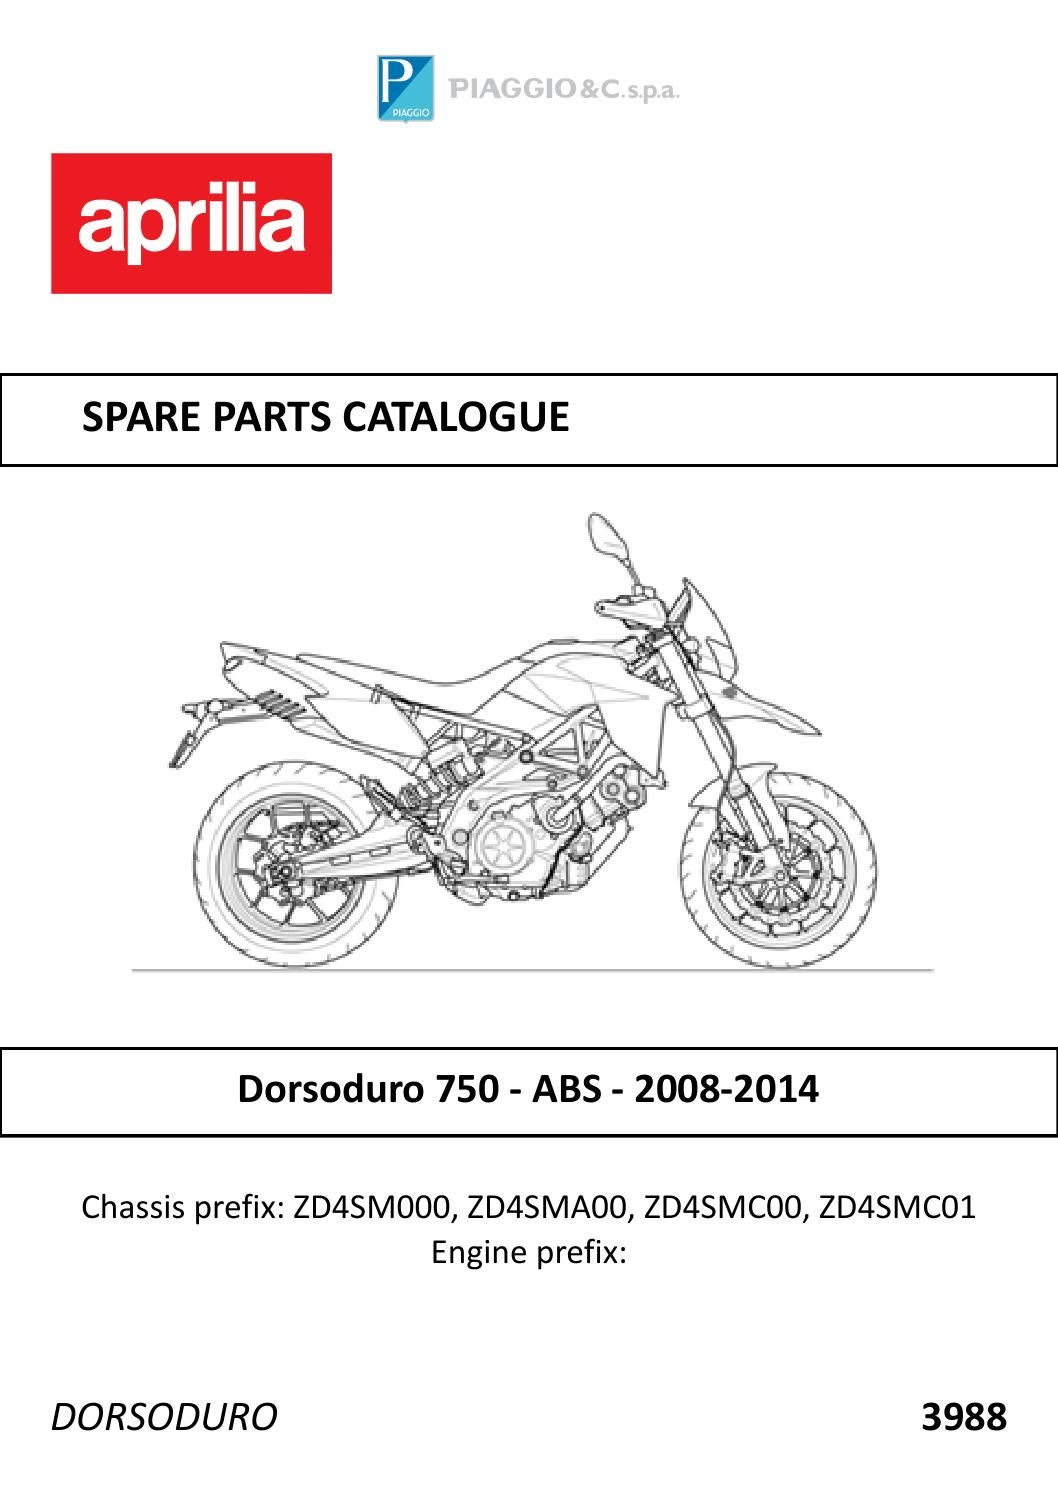 hight resolution of 2008 14 aprilia dorsoduro 750 by ams ducati issuu 2001 cadillac seville sts wiring diagrams